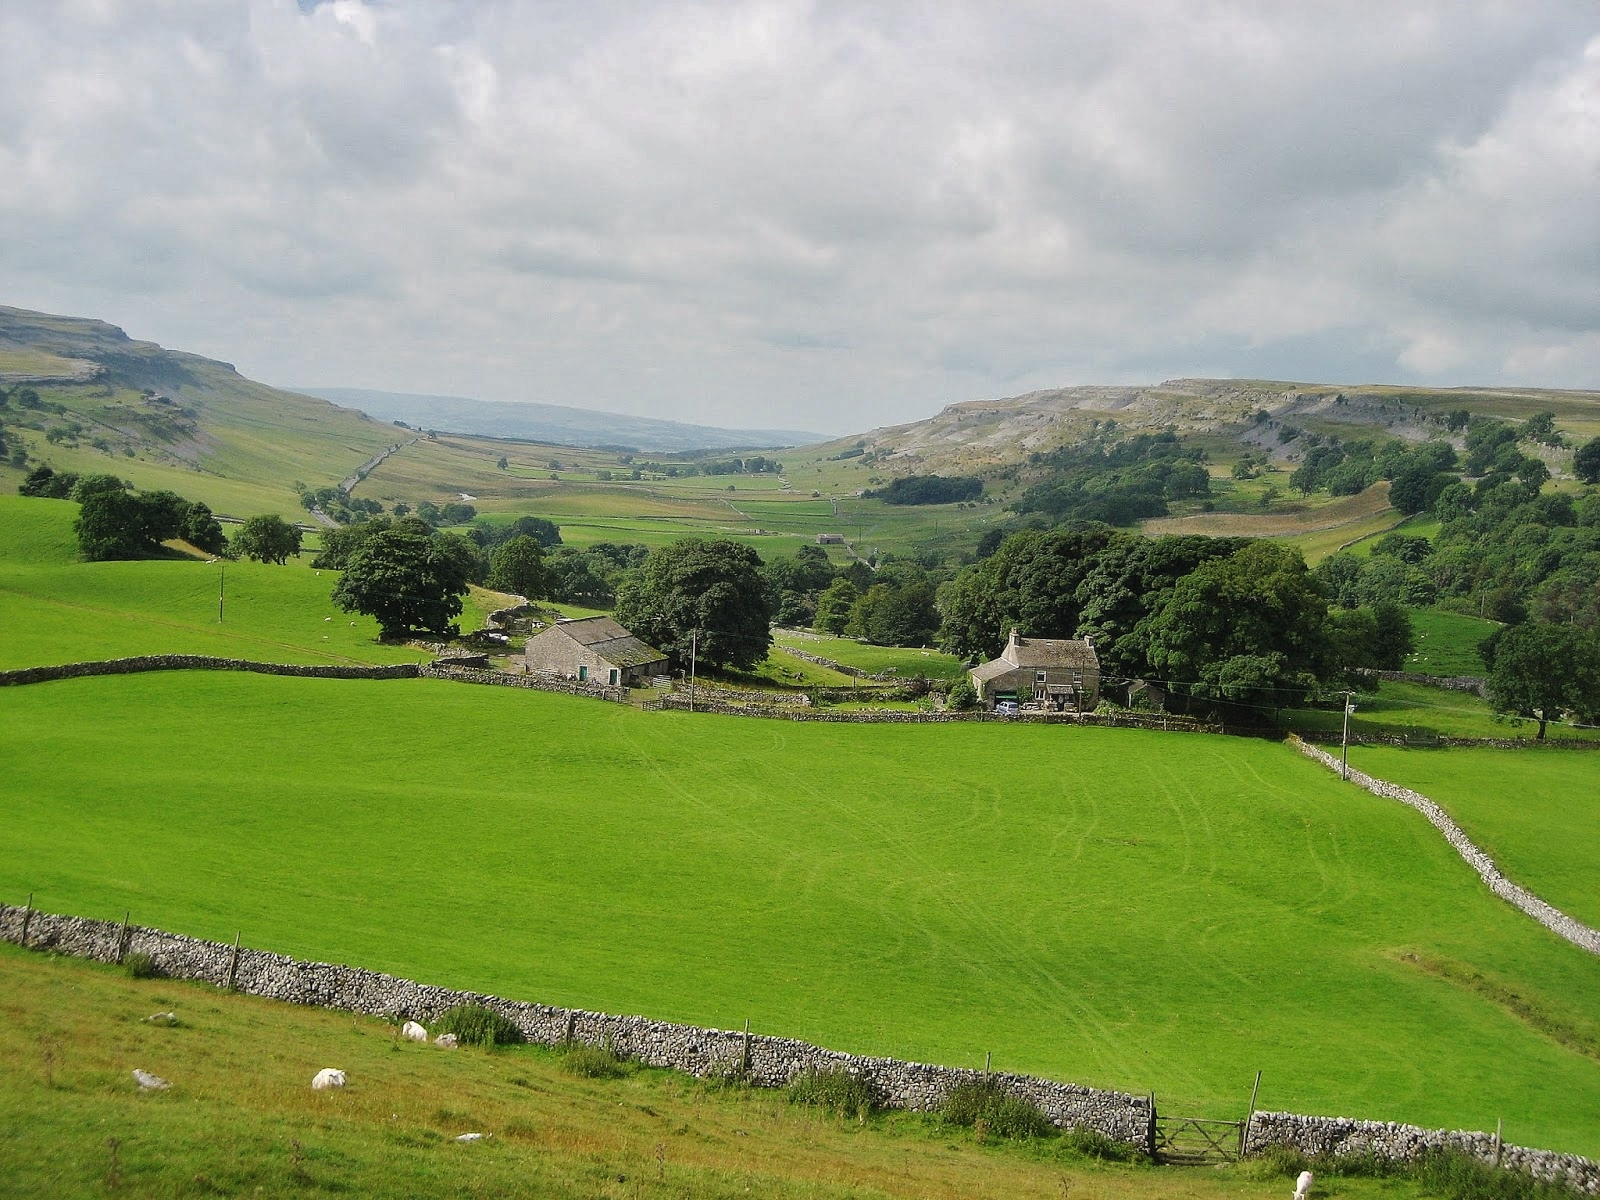 The classic u-shaped profile of Chapel-le-Dale, looking south, with the limestone benches dominating either side. Stephen Oldfield